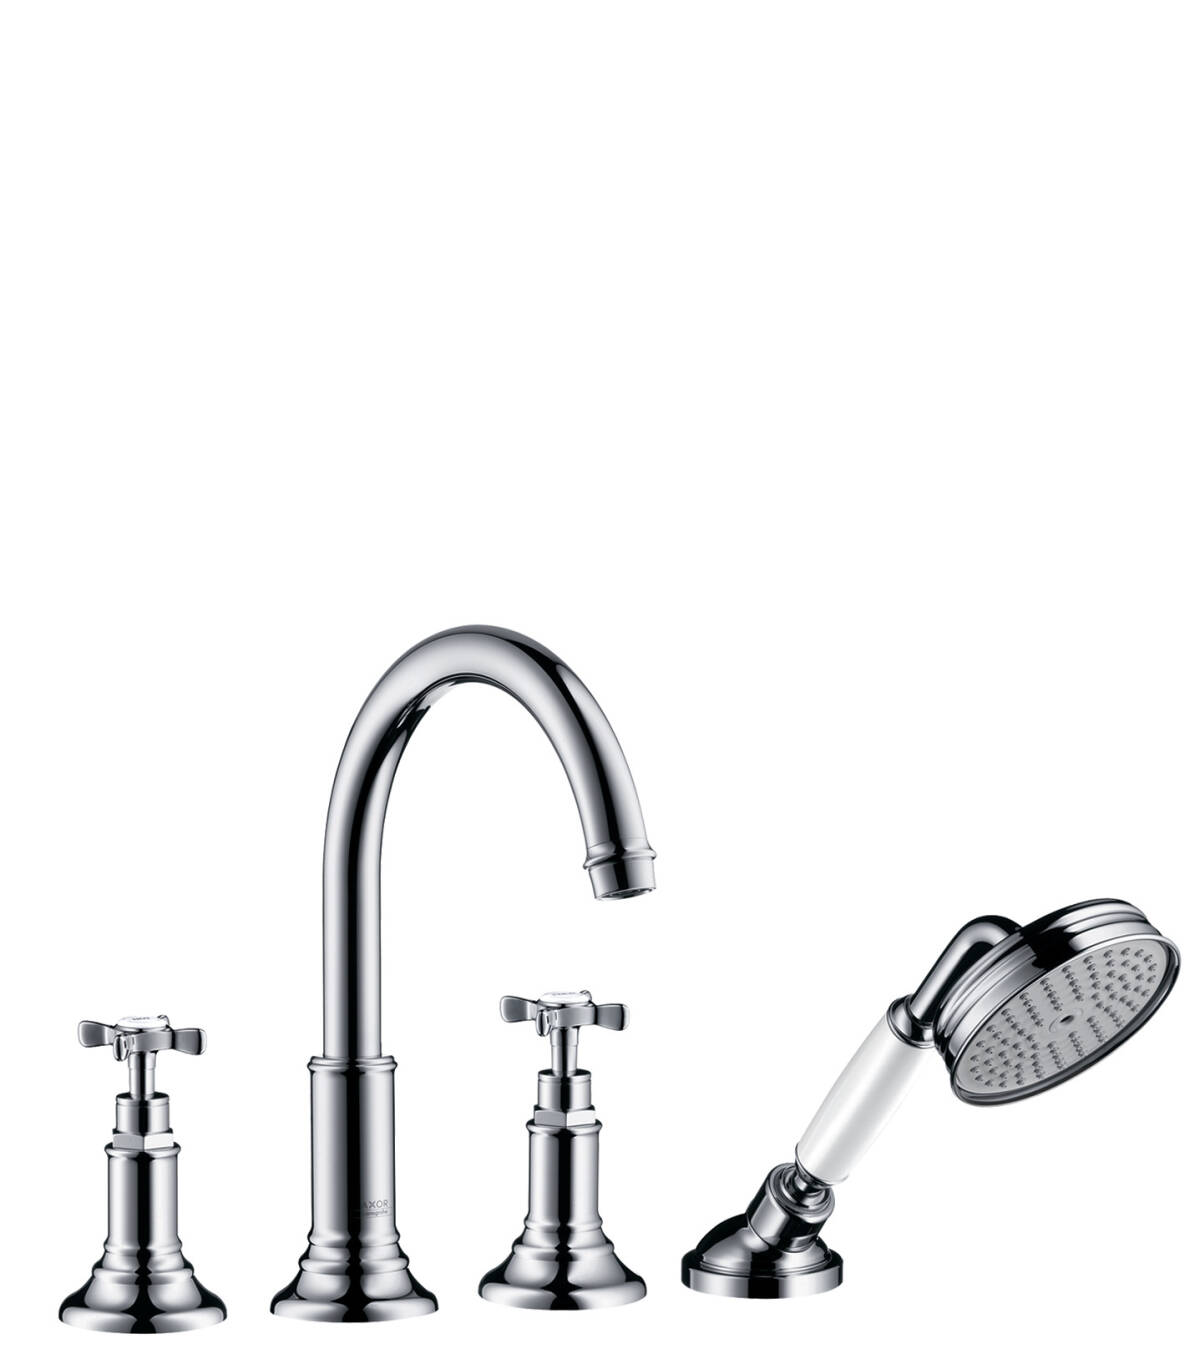 4-hole tile mounted bath mixer with cross handles, Chrome, 16544000